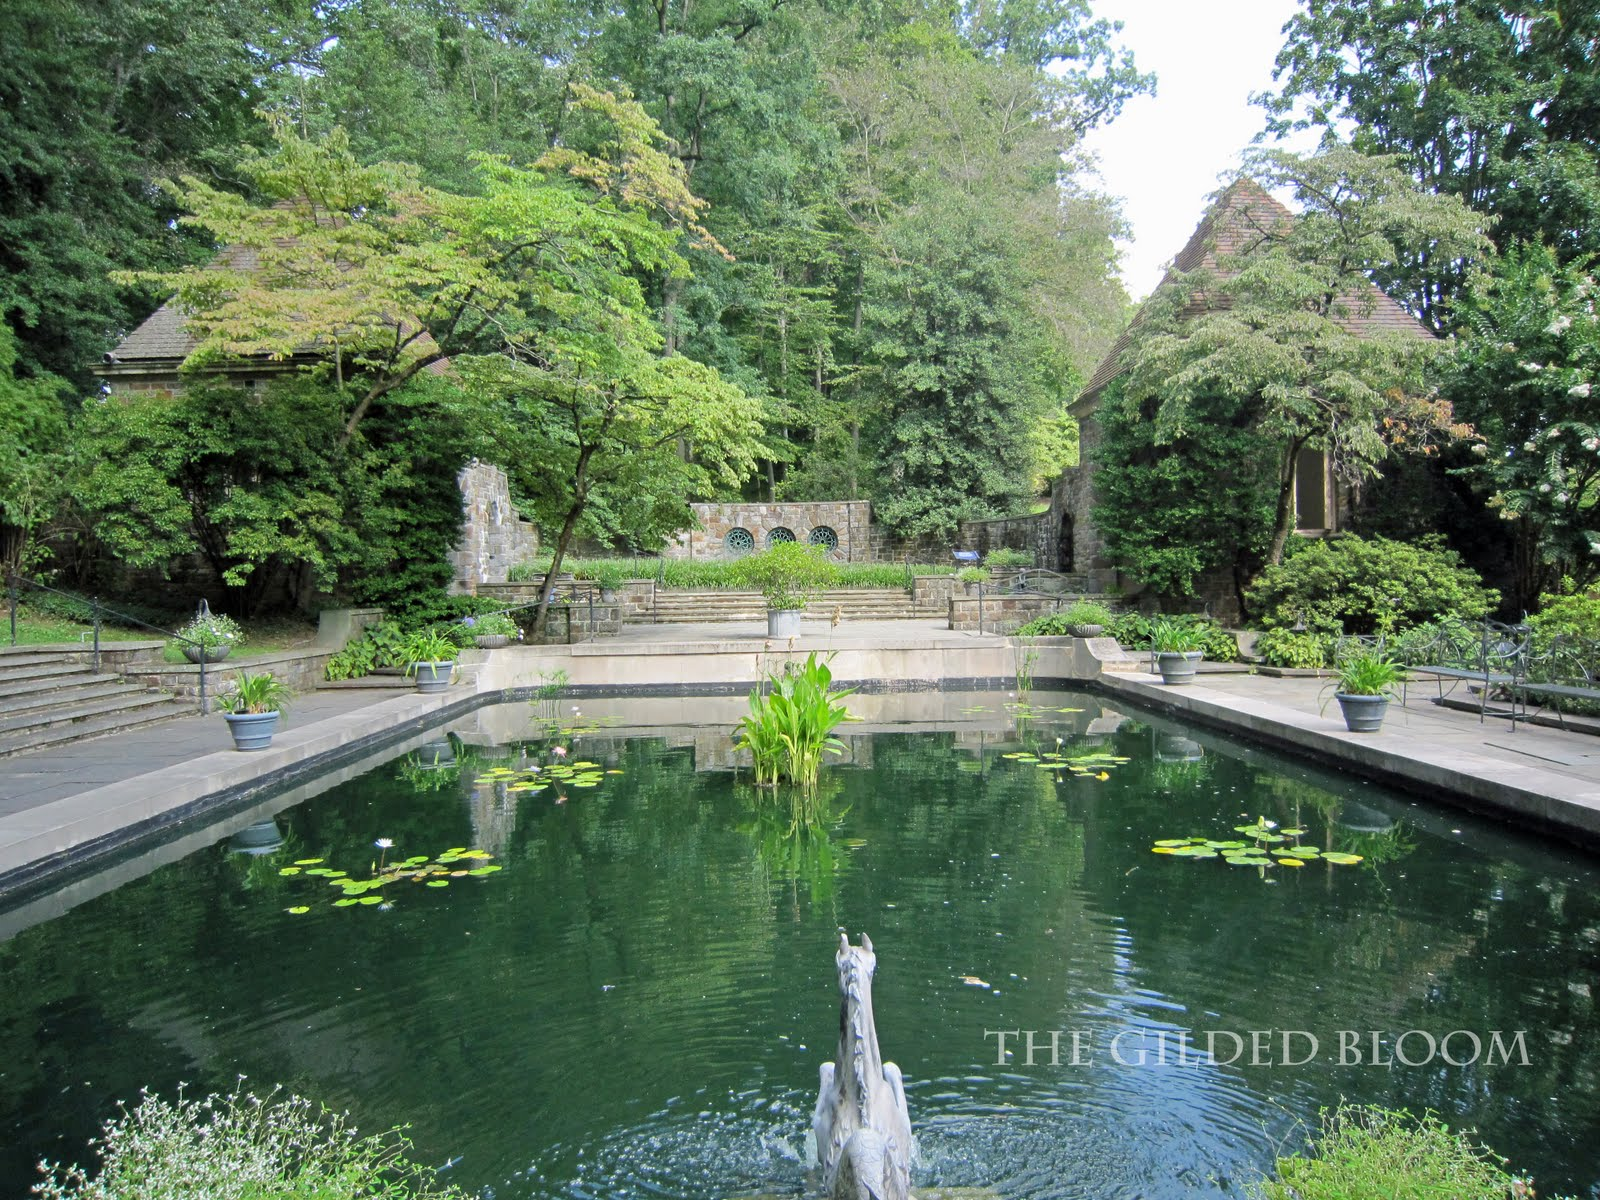 Winterthur museum and country estate the gilded bloom - Reflecting pool ...